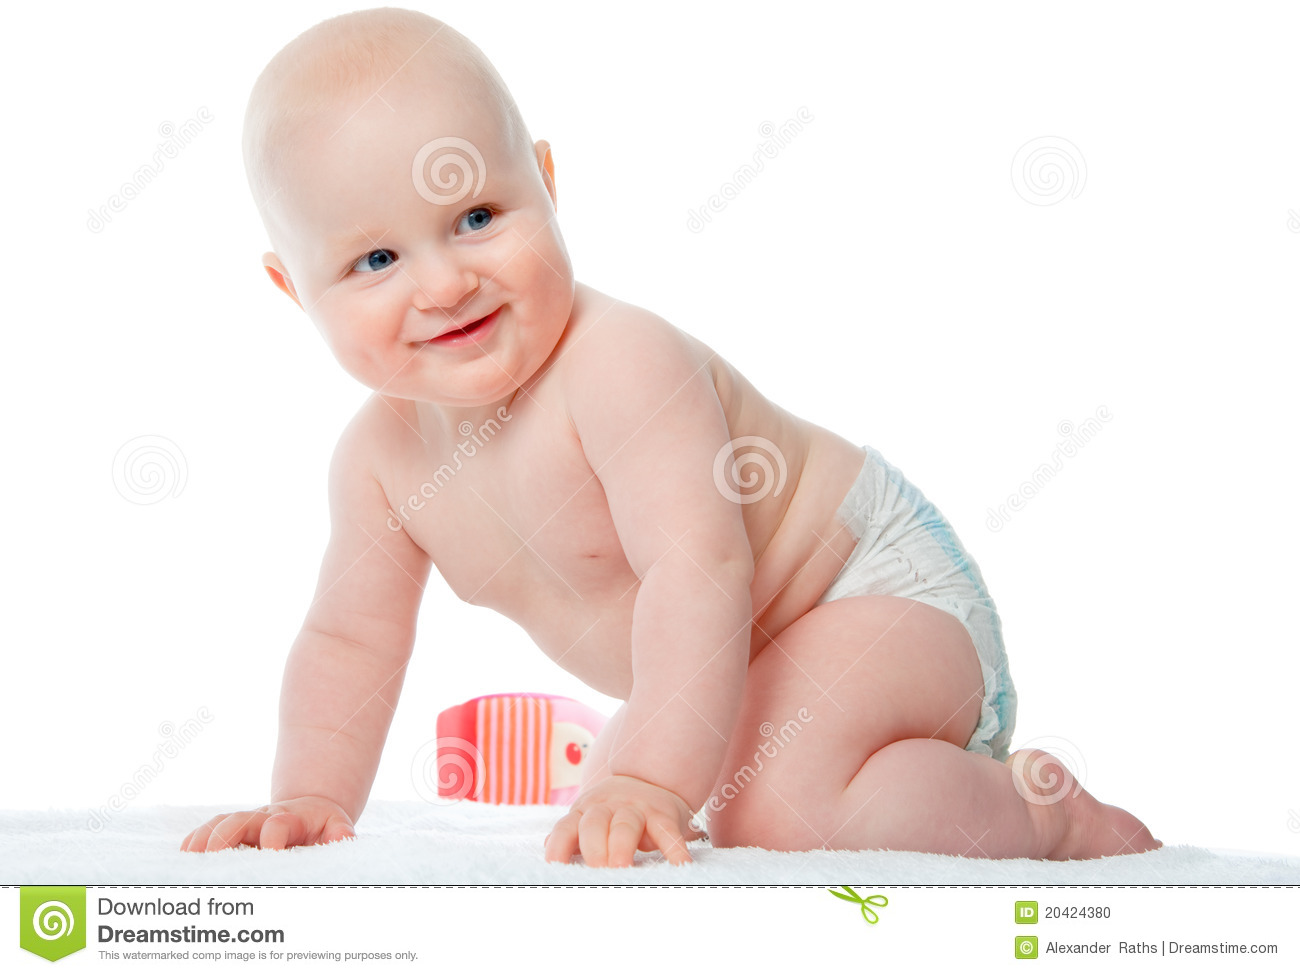 Picture of crawling baby in diaper over white.